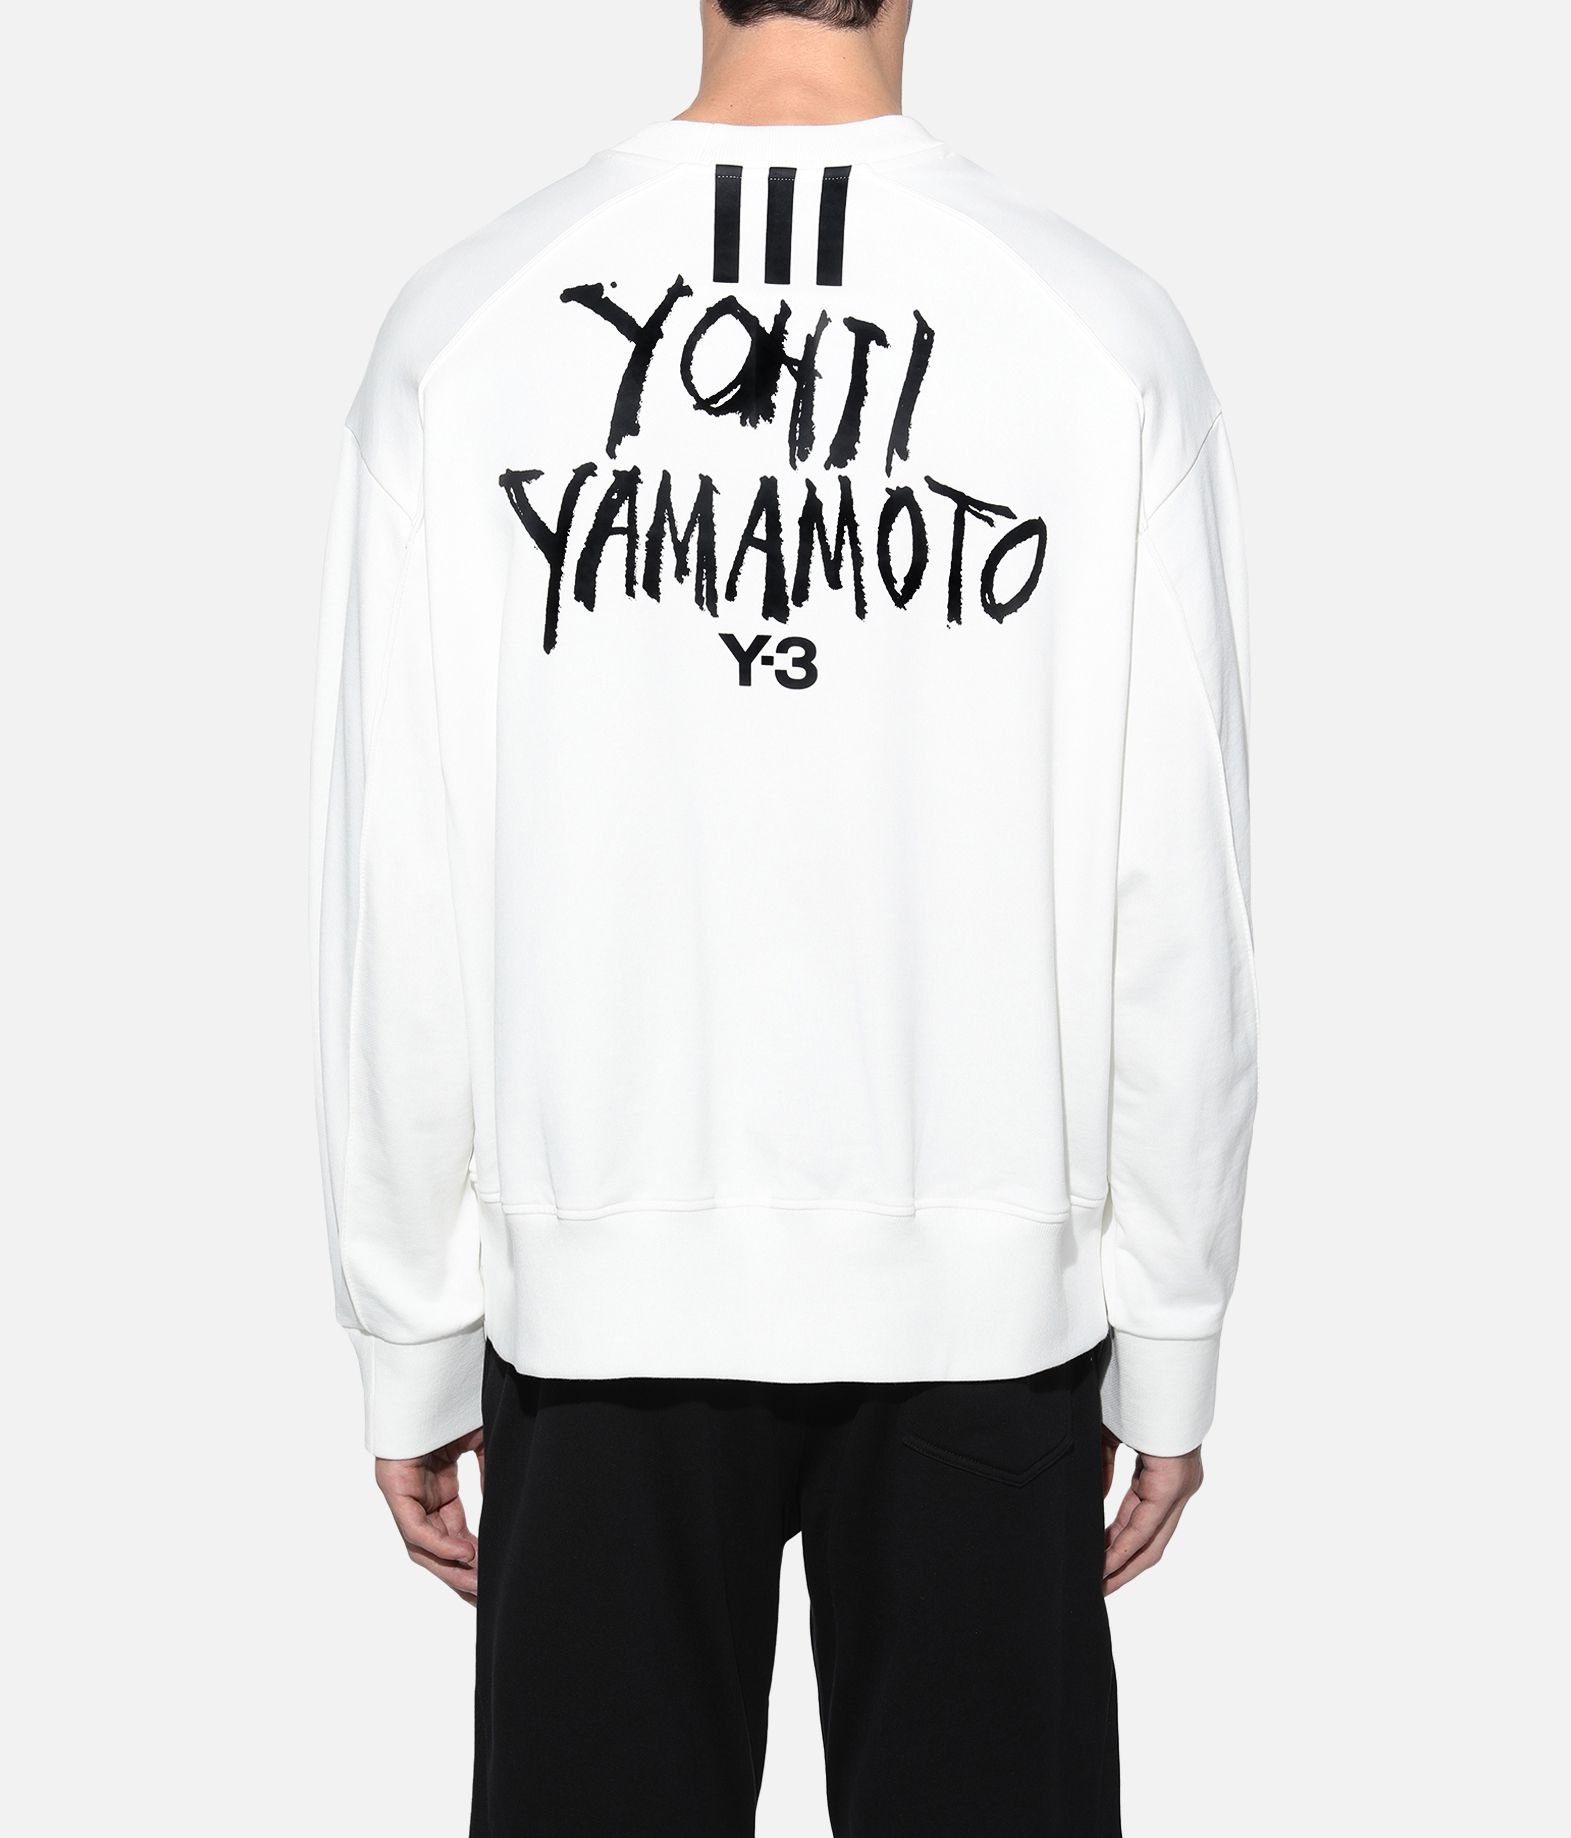 Y-3 Y-3 Signature Graphic Sweatshirt Sweatshirt Man d